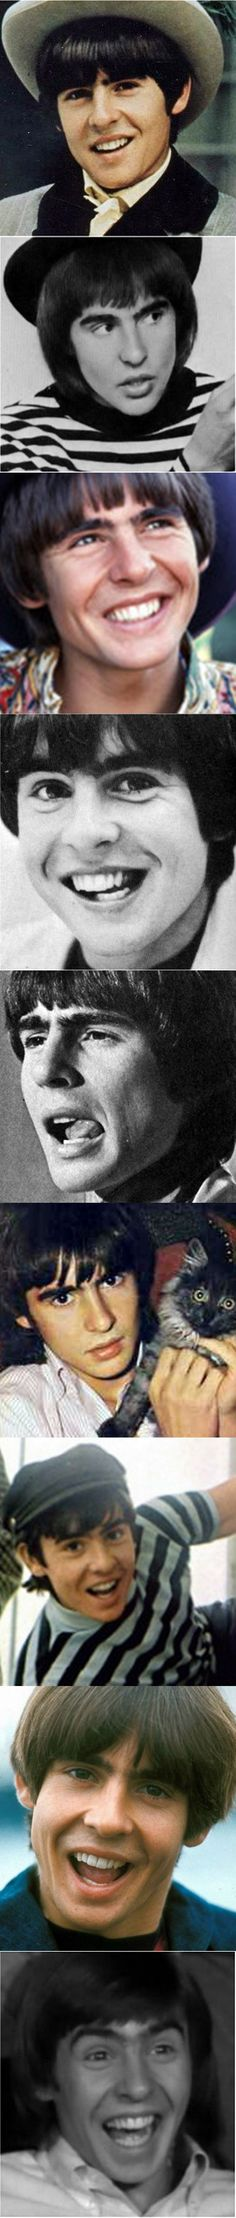 "Davy Jones ""The Monkees"""